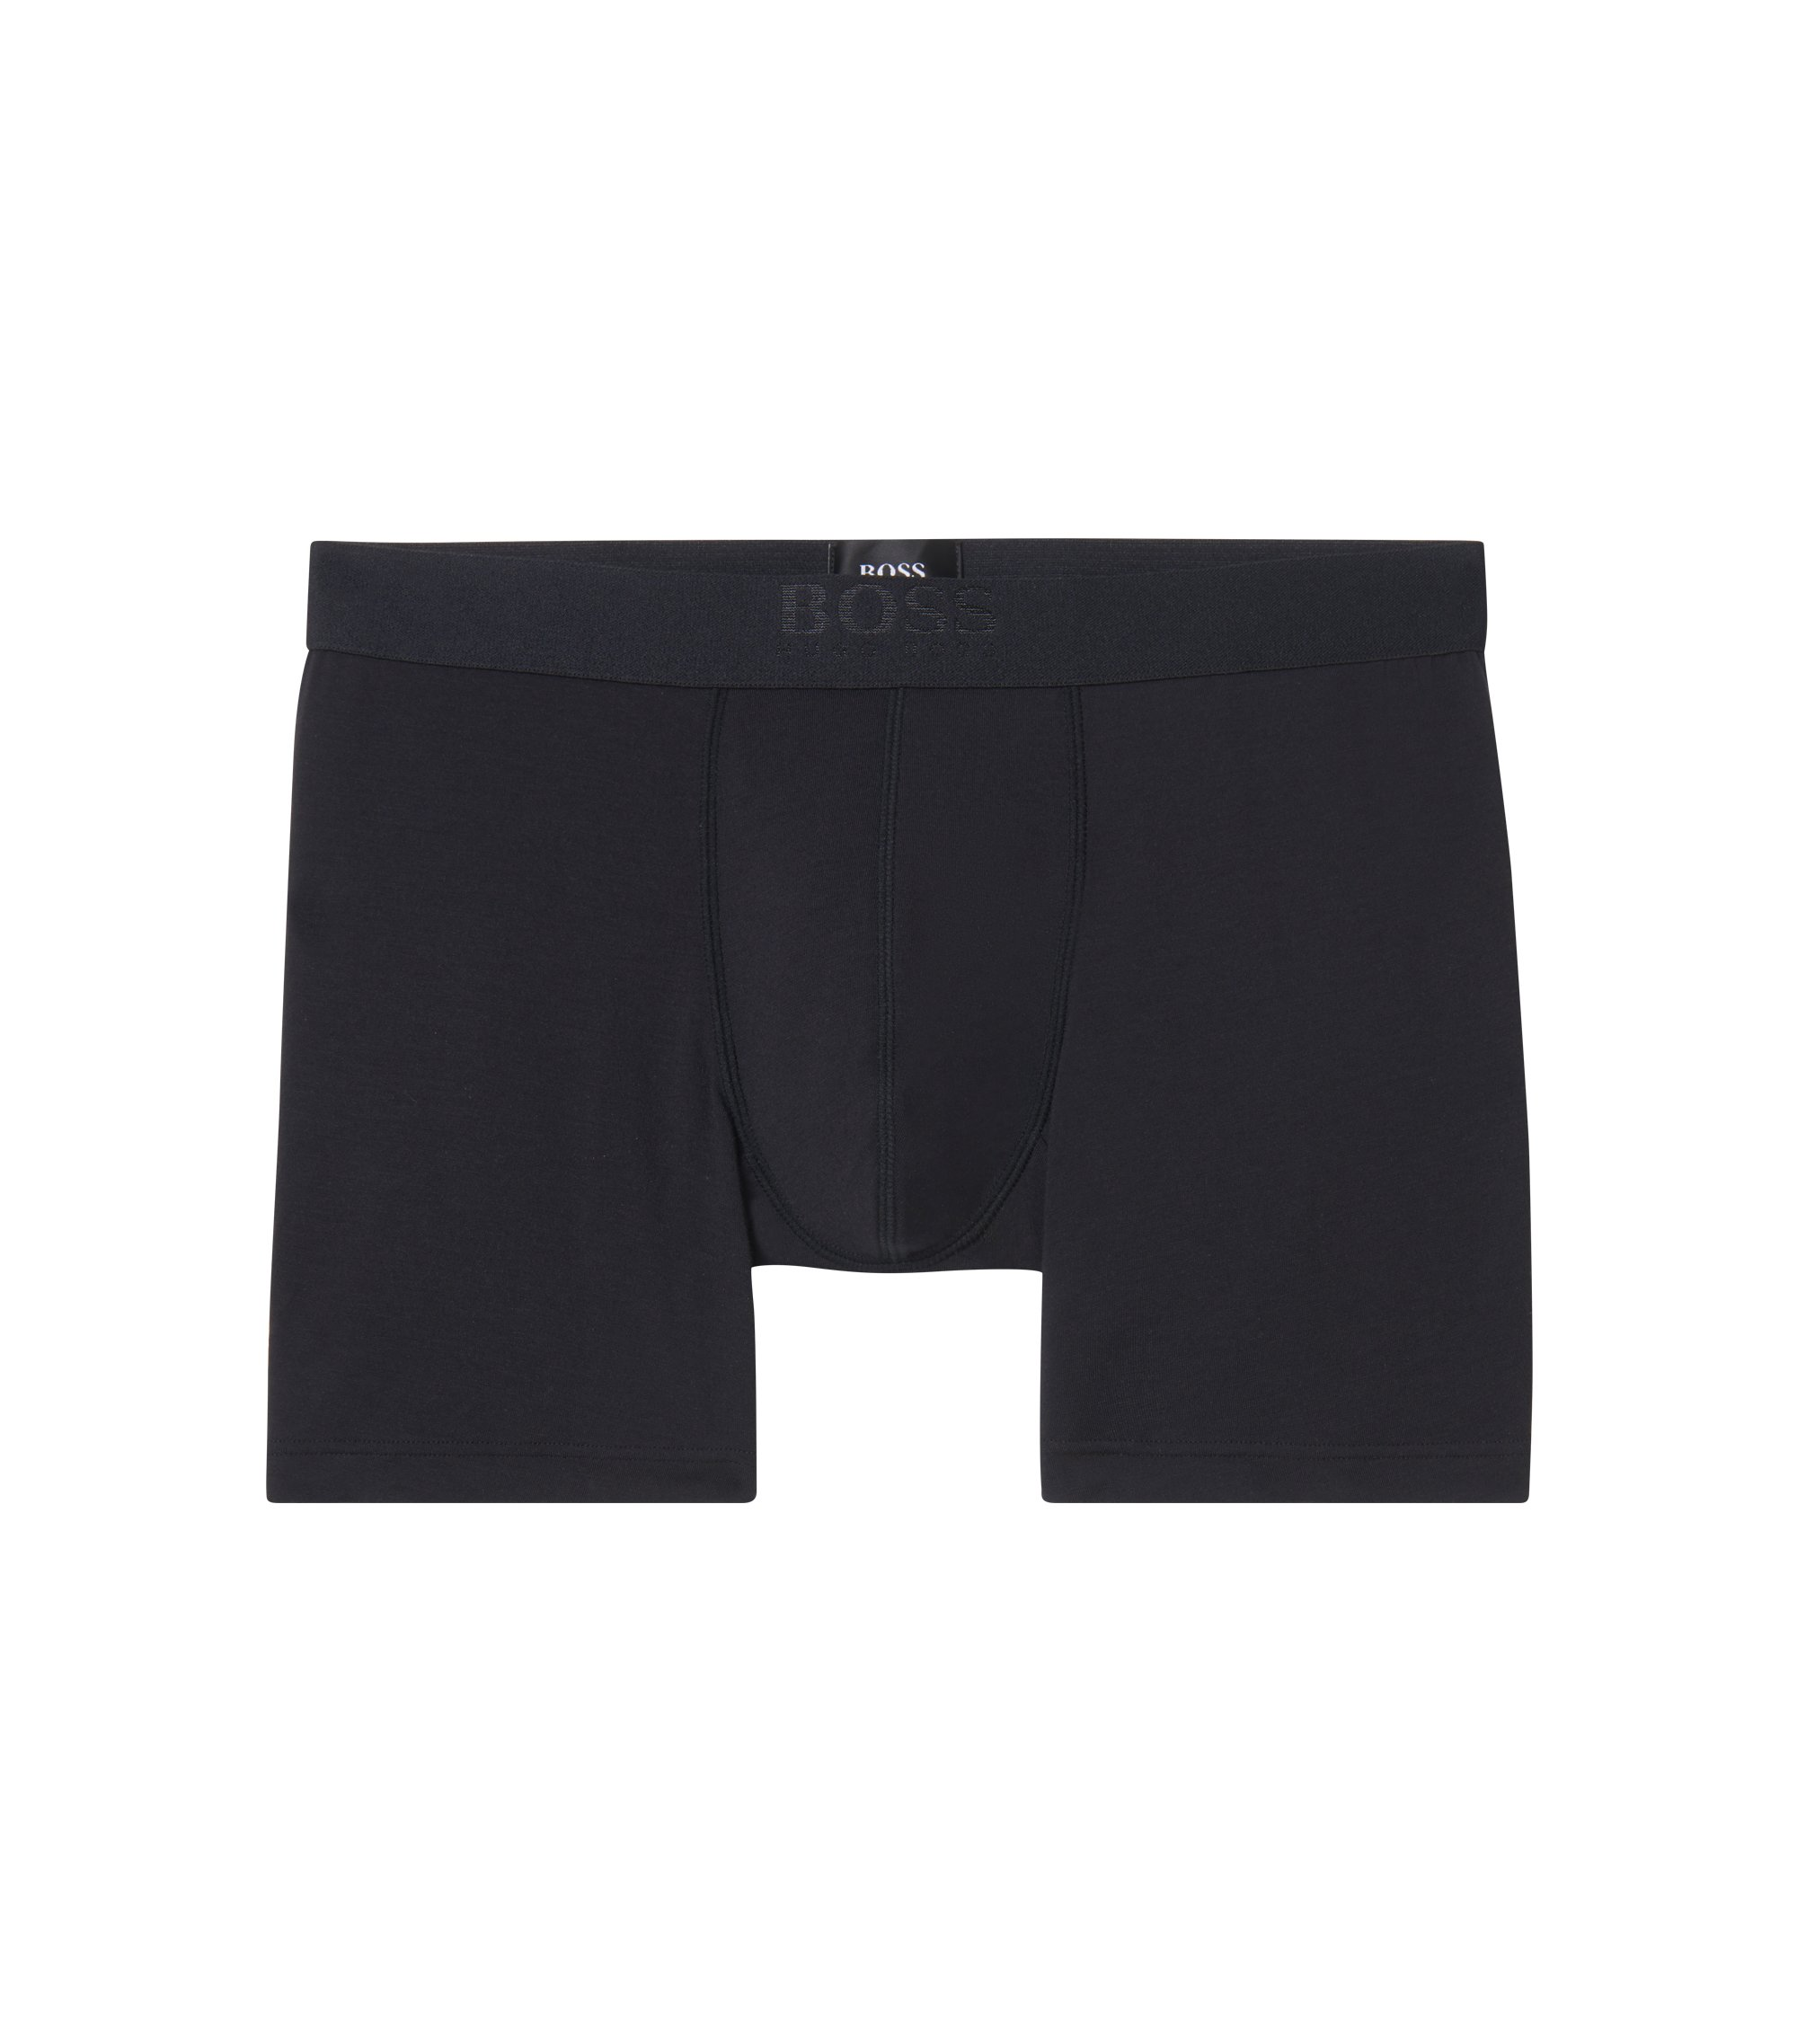 Stretch Modal Boxer Brief | Boxer Brief Modal, Black